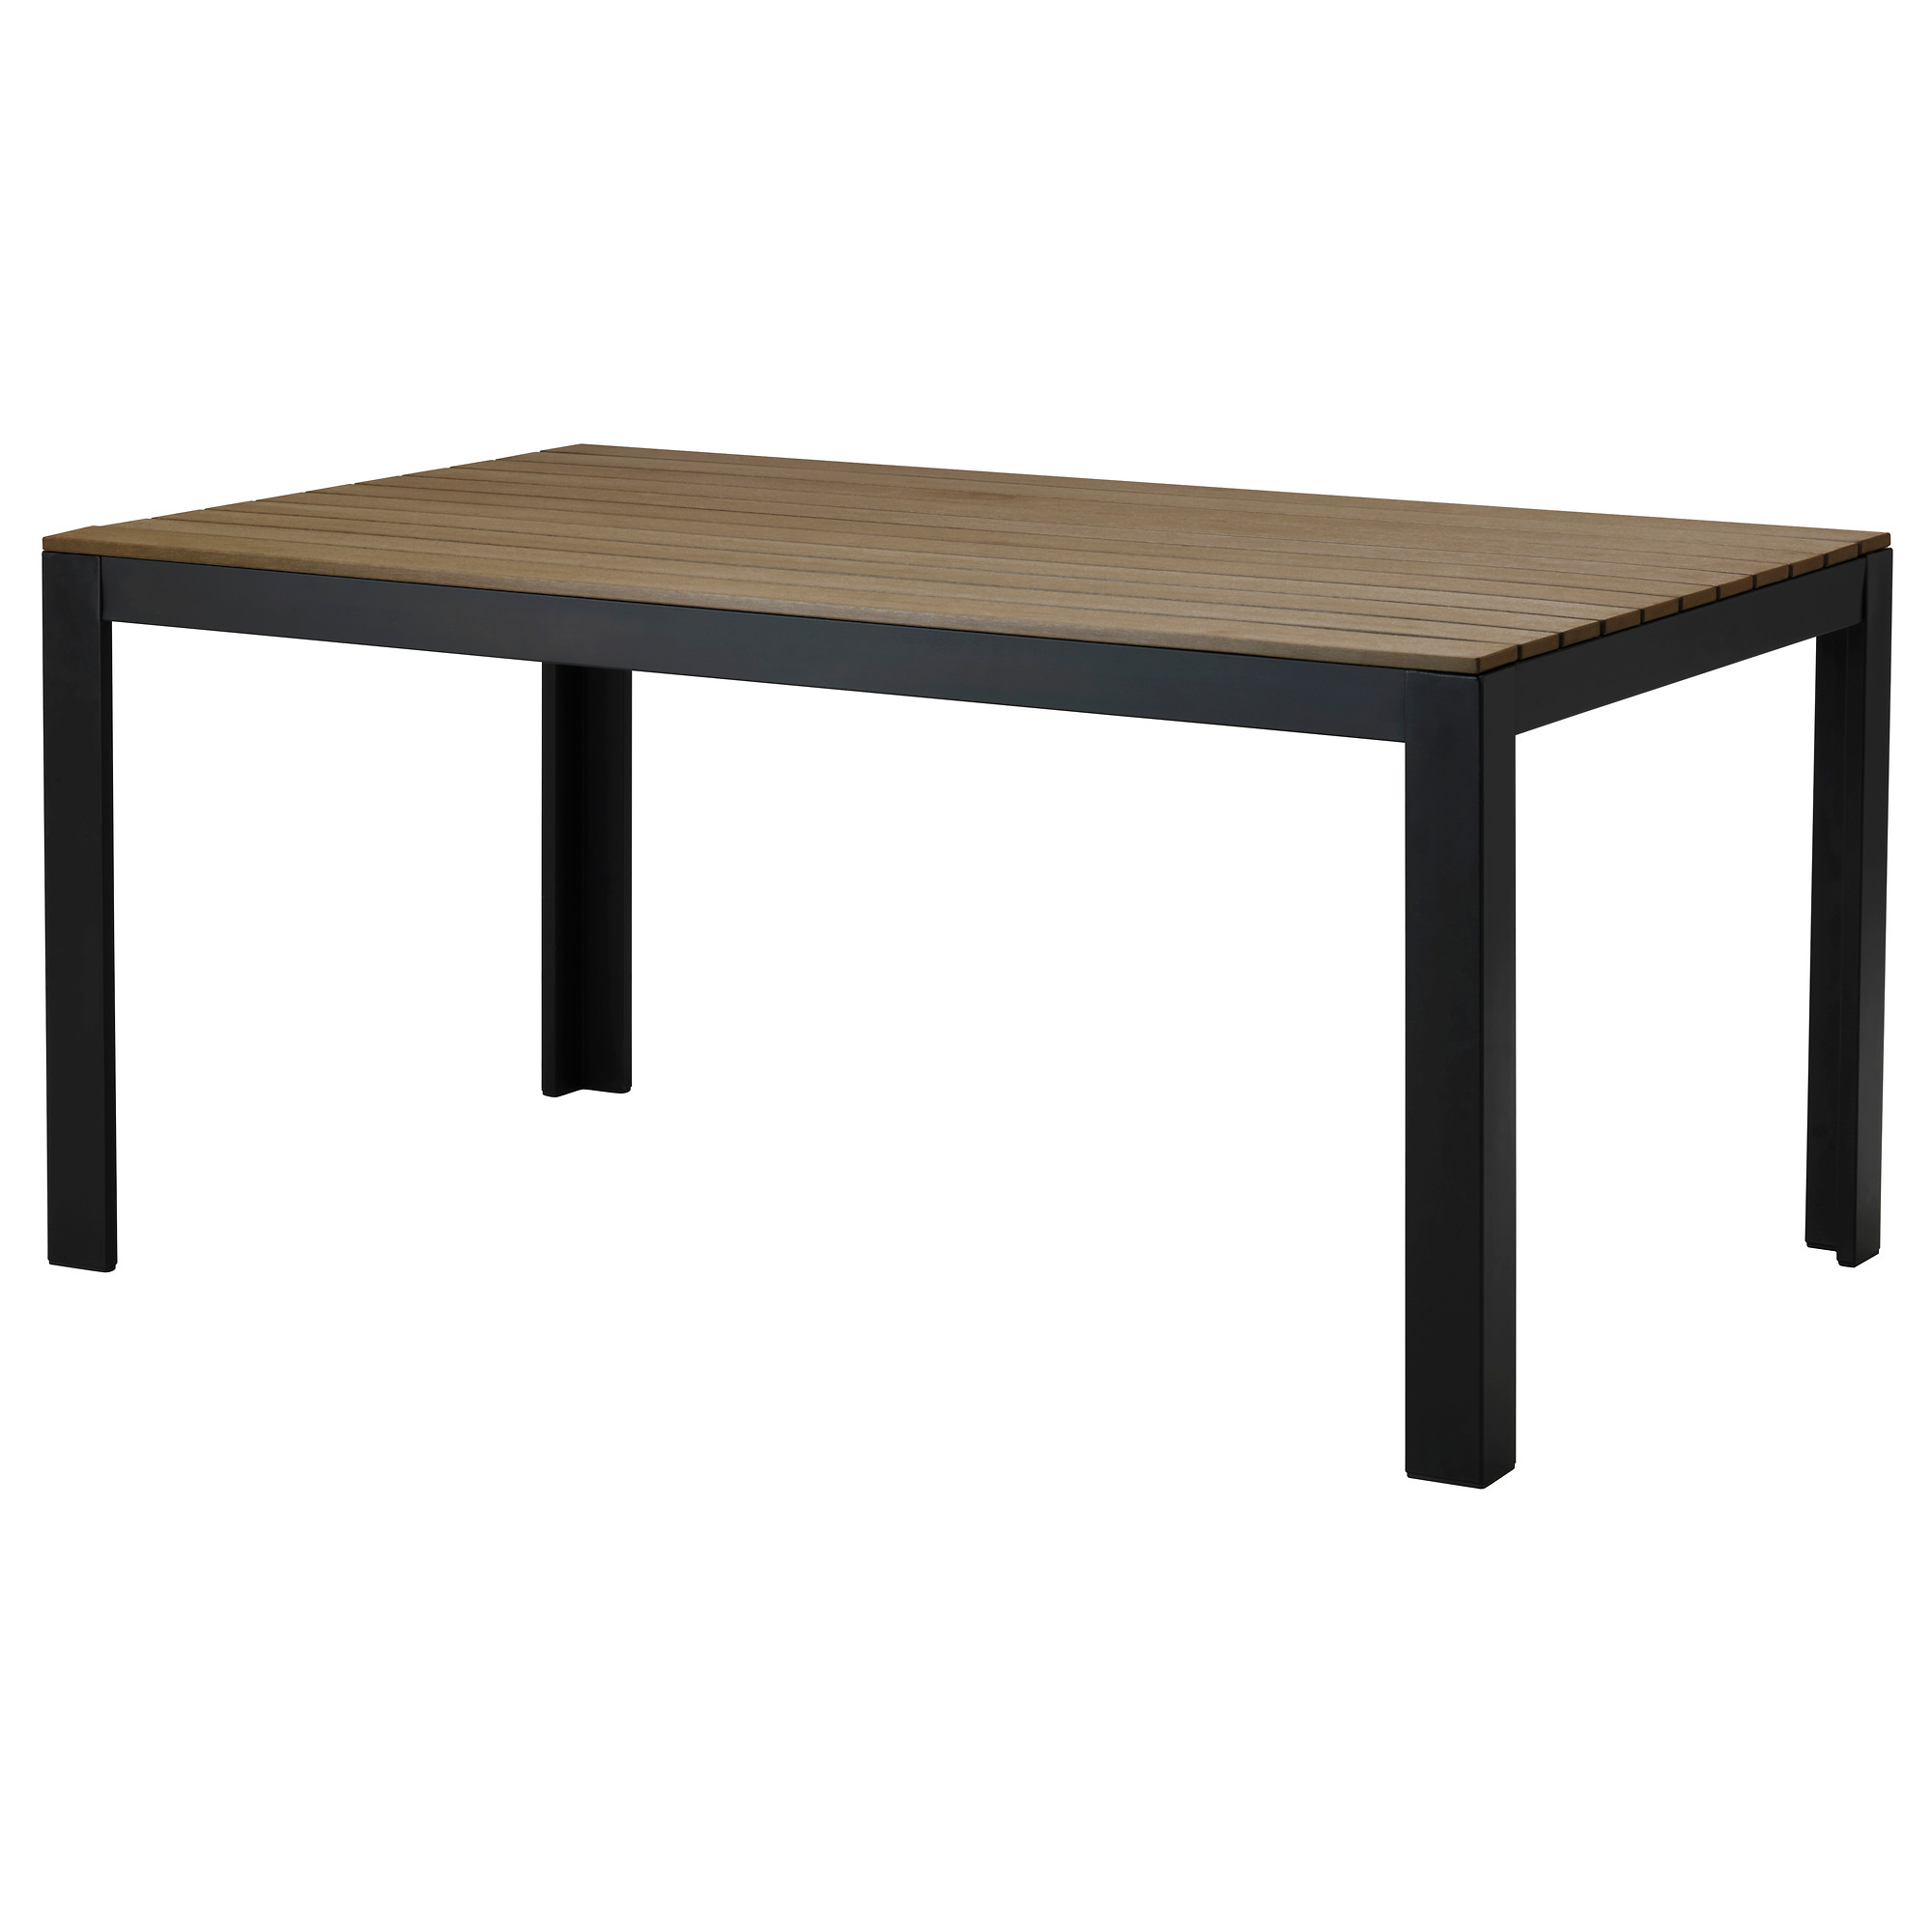 outdoor table falster table, outdoor - black/brown - ikea RLYPZHC